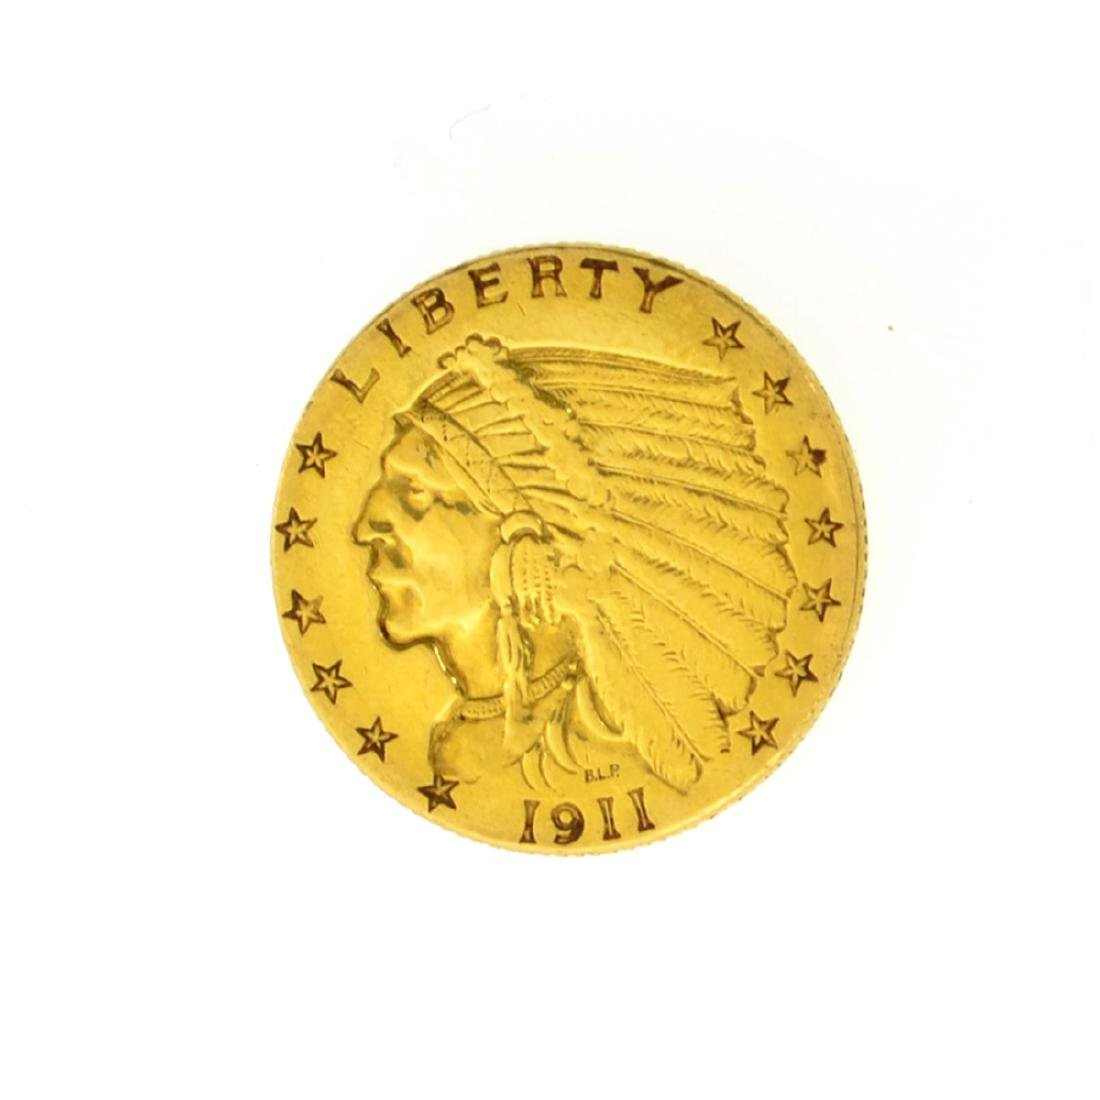 *1911 $2.50 U.S. Indian Head Gold Coin (JG)